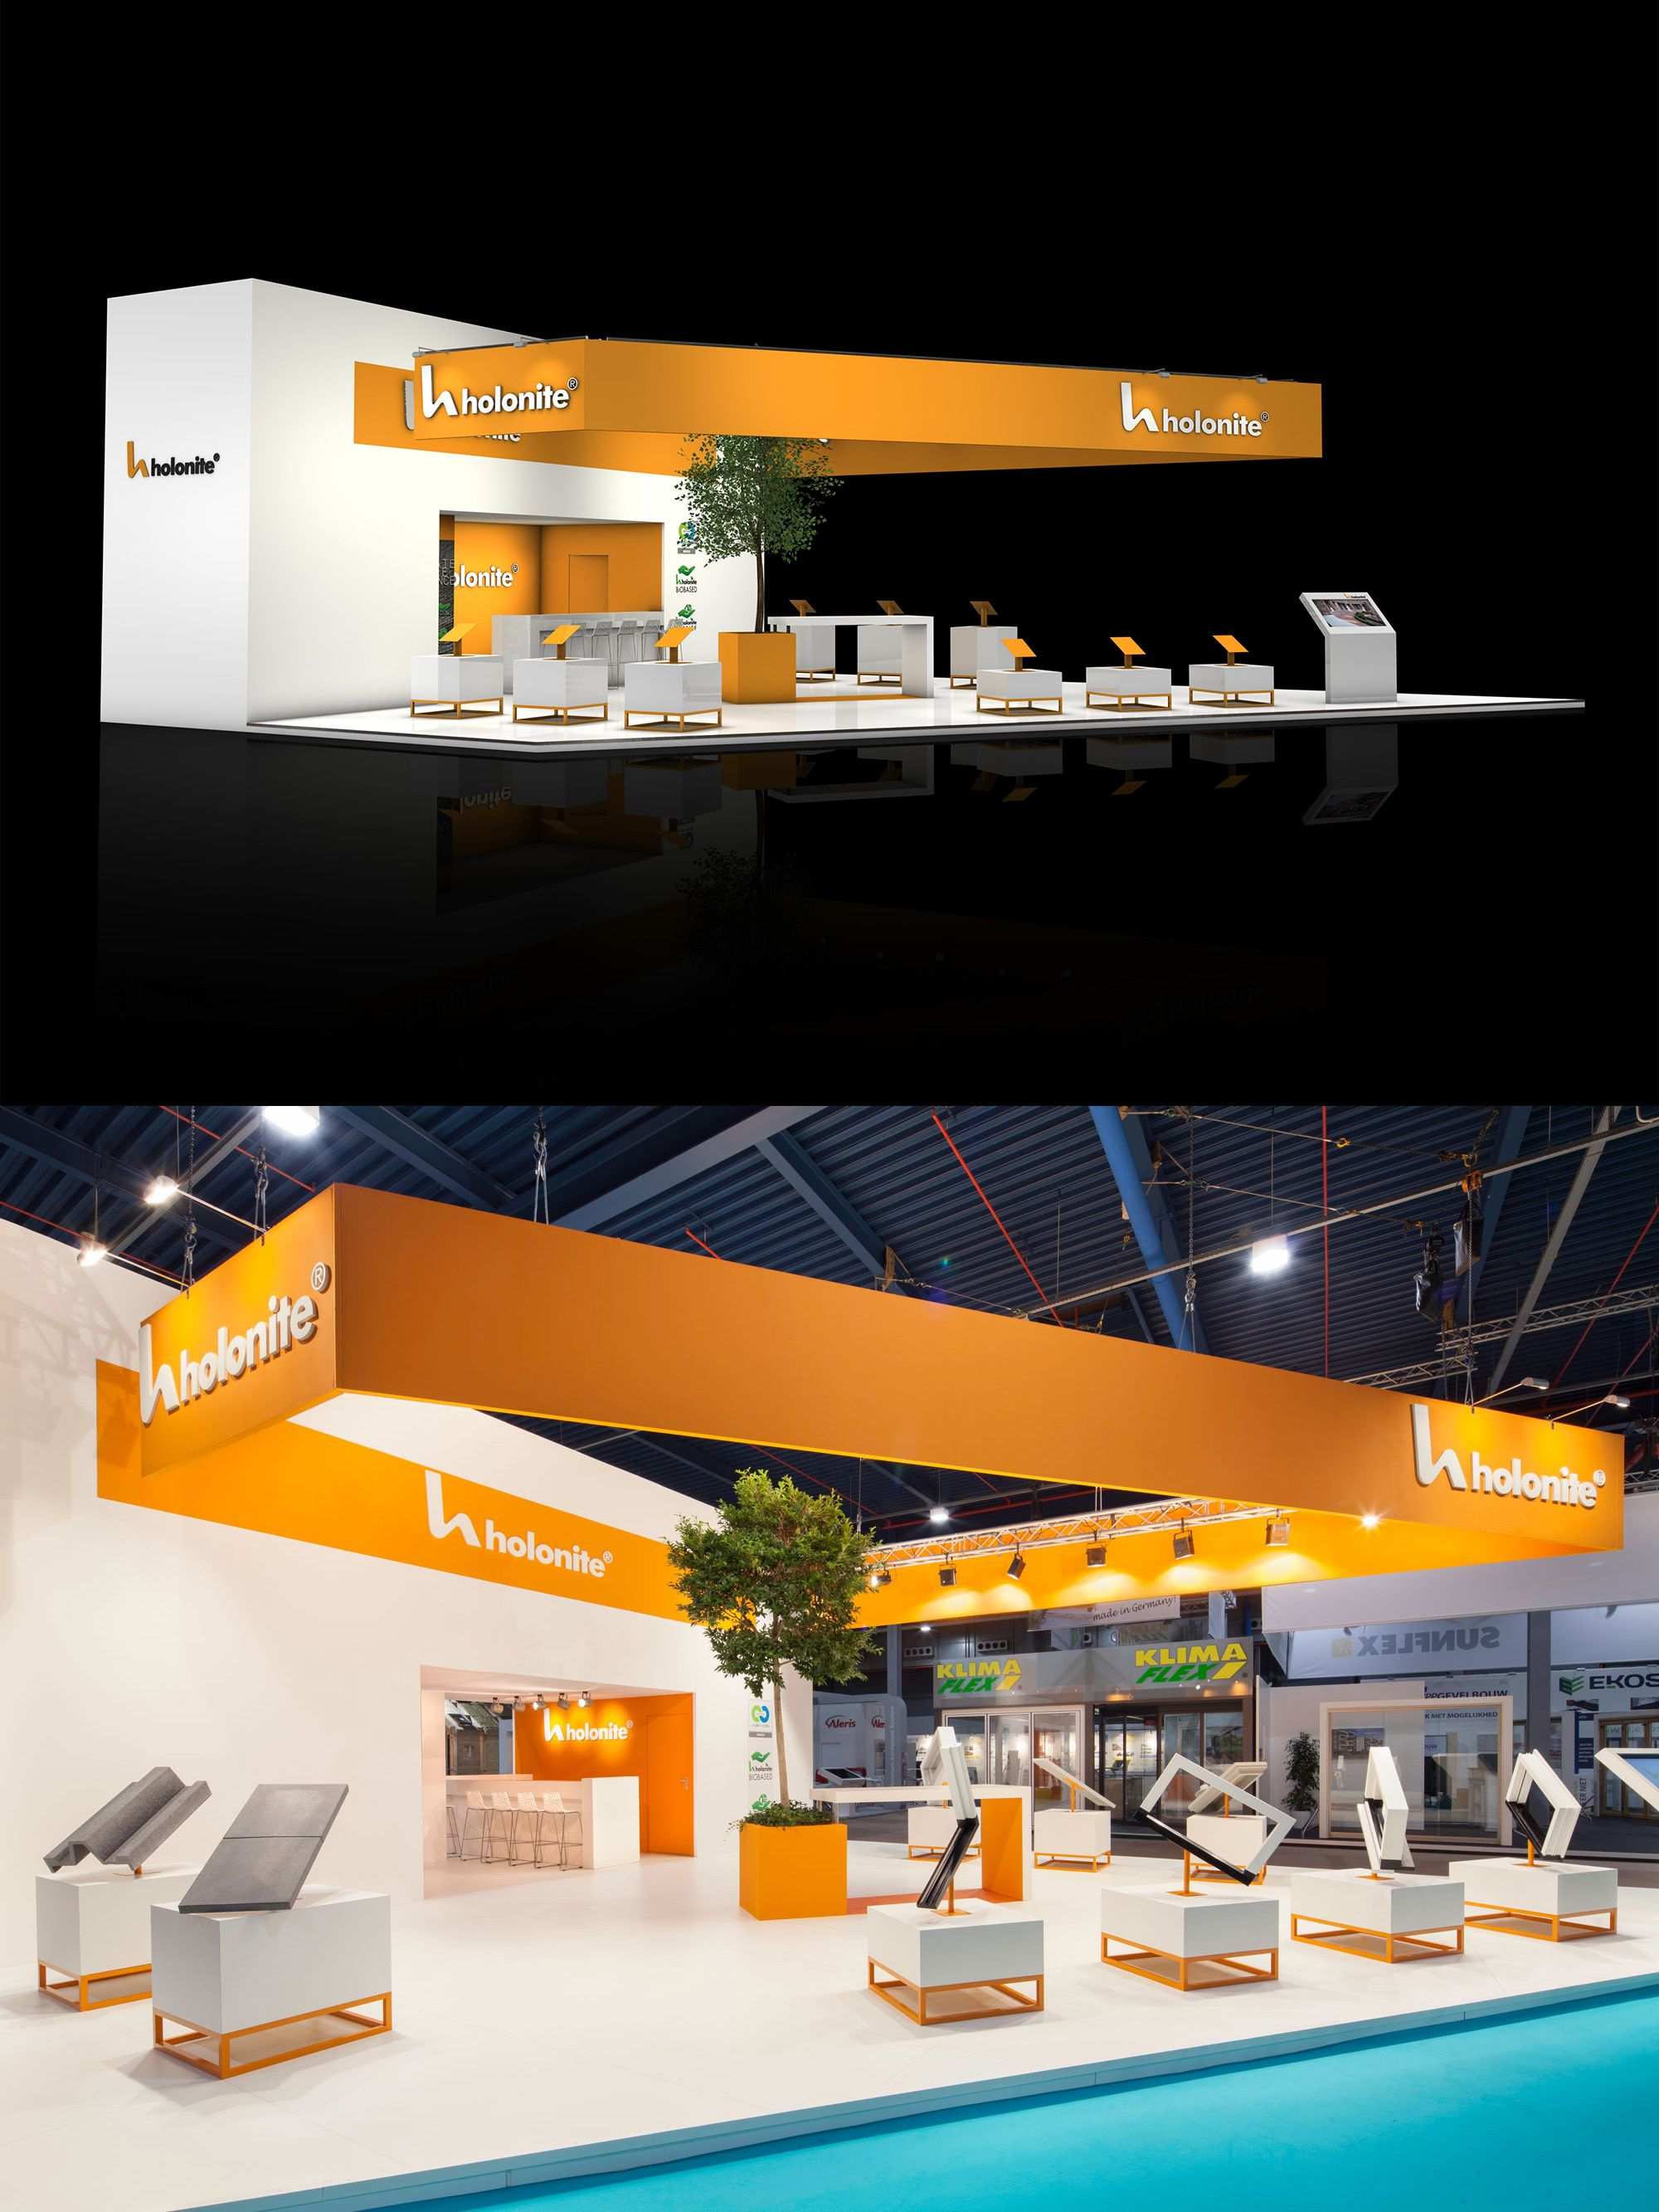 Exhibition Stand Design And Build : Exhibition stand design and booth from the inside